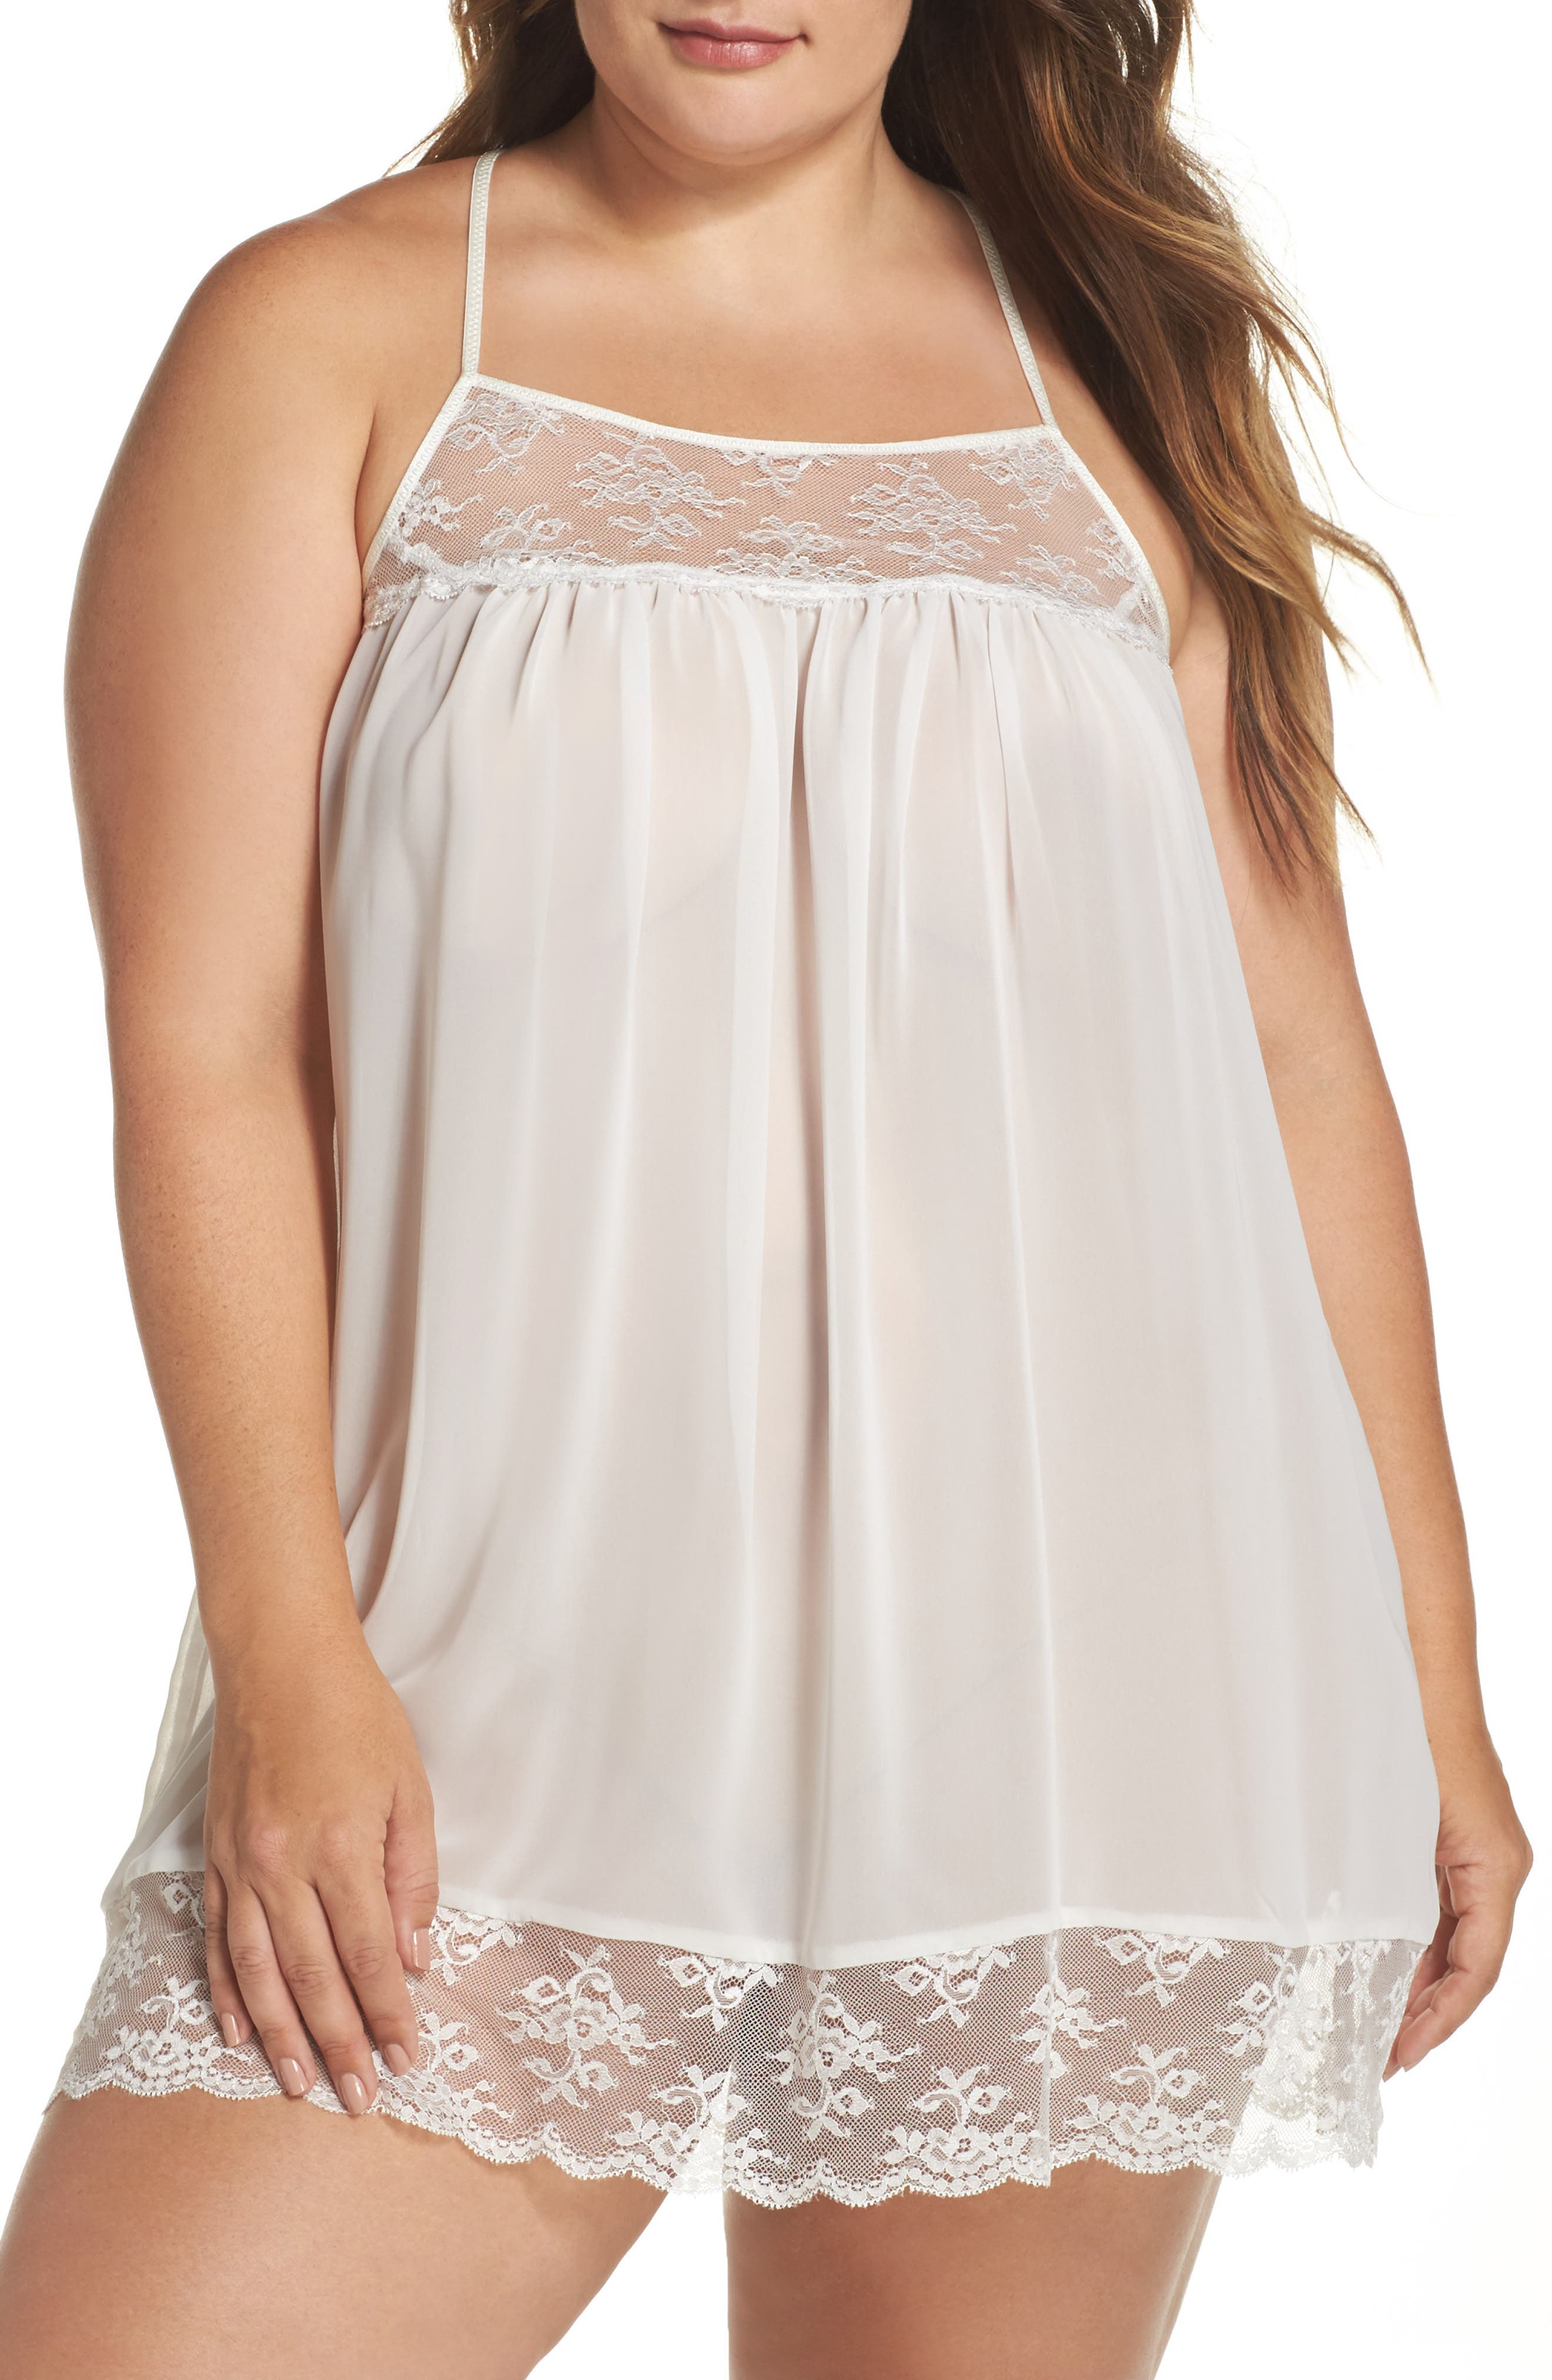 In Bloom by Jonquil Chiffon Chemise (Plus Size)